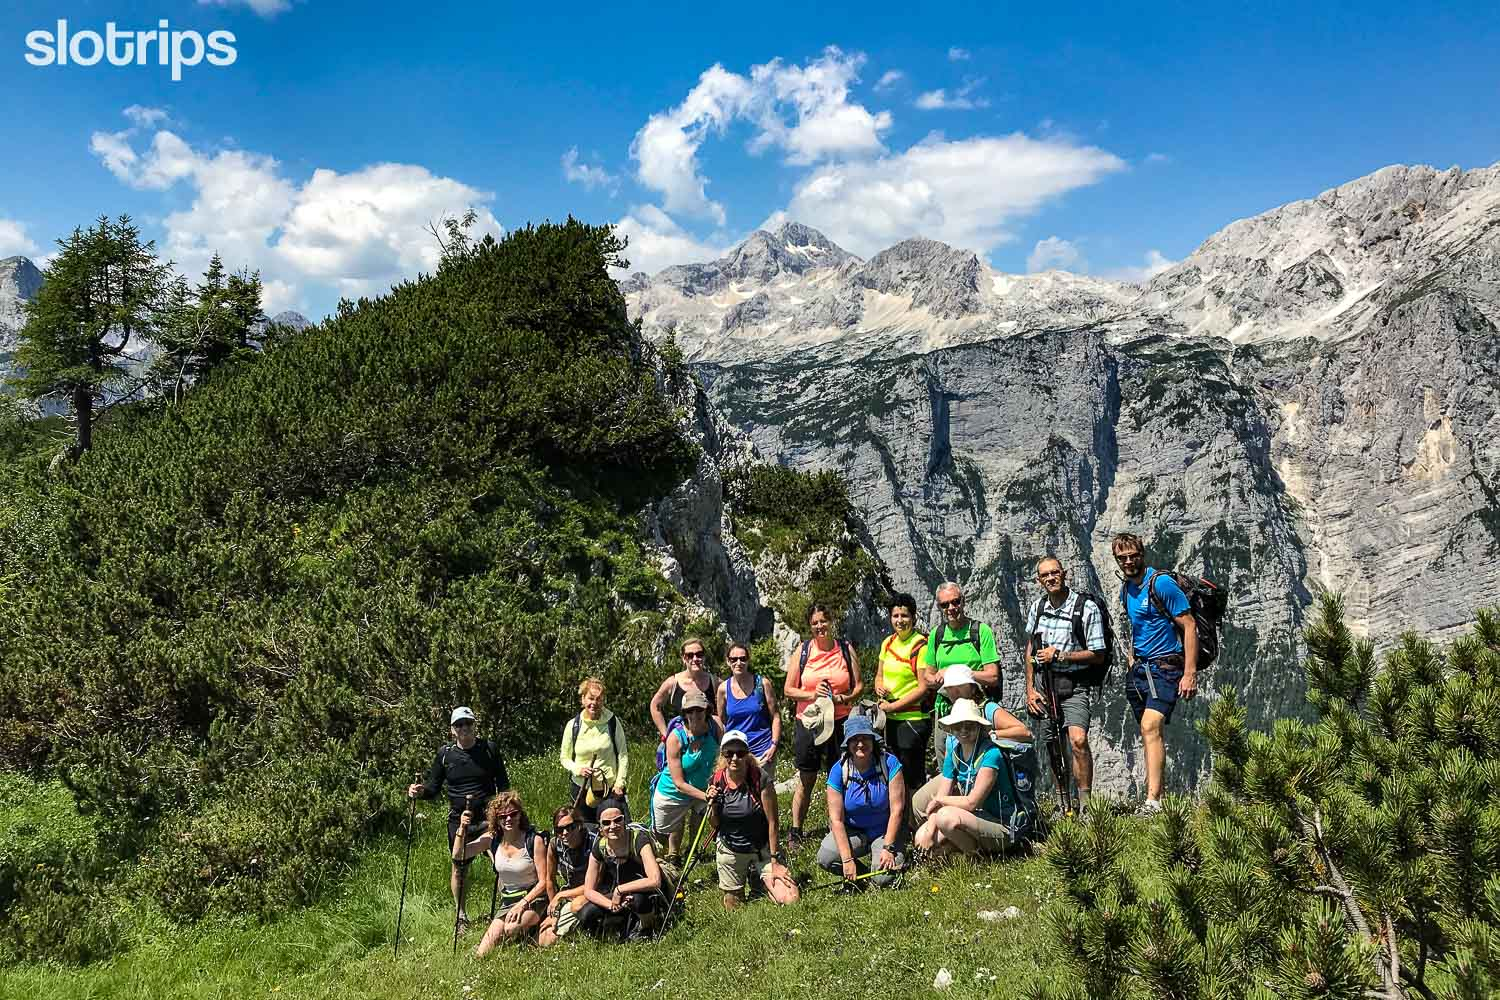 Best walks in the Alps with Slotrips